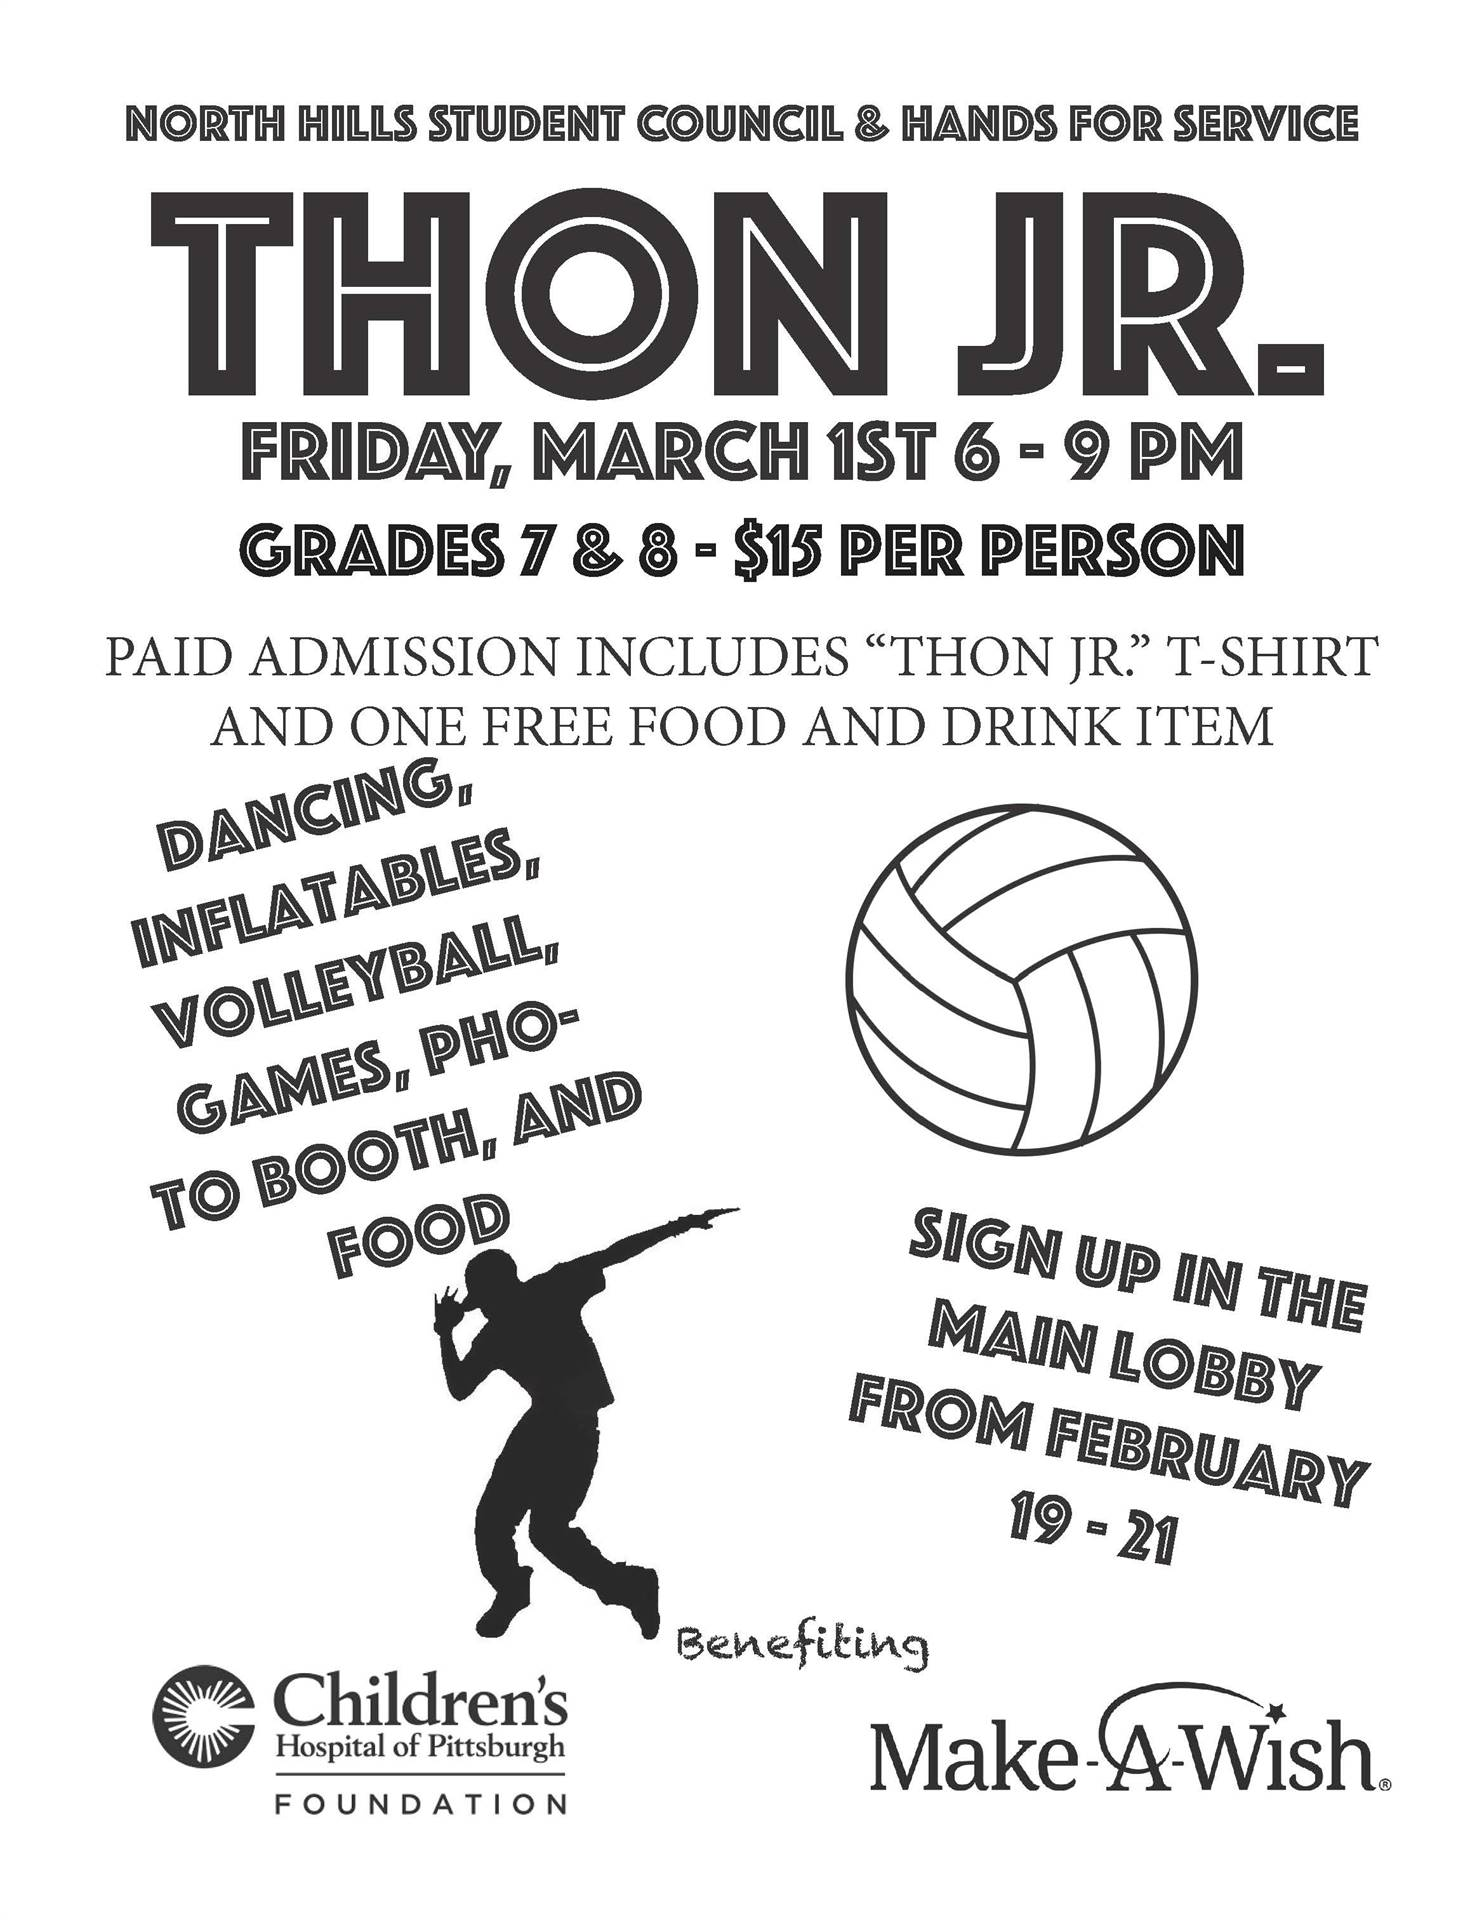 THON jr. Flyer